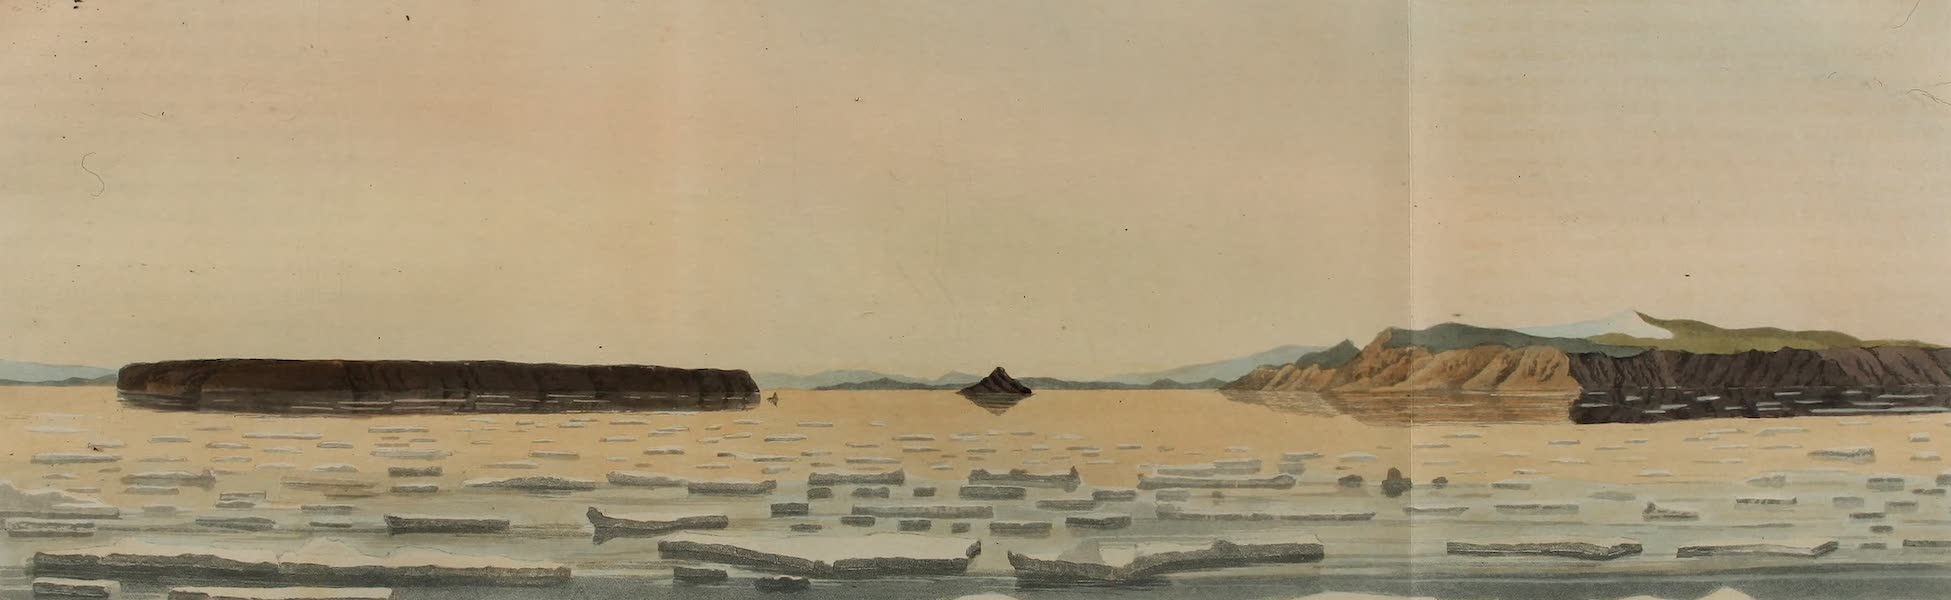 A Voyage of Discovery - View of the Islands in Wolstenholme Sound (1819)